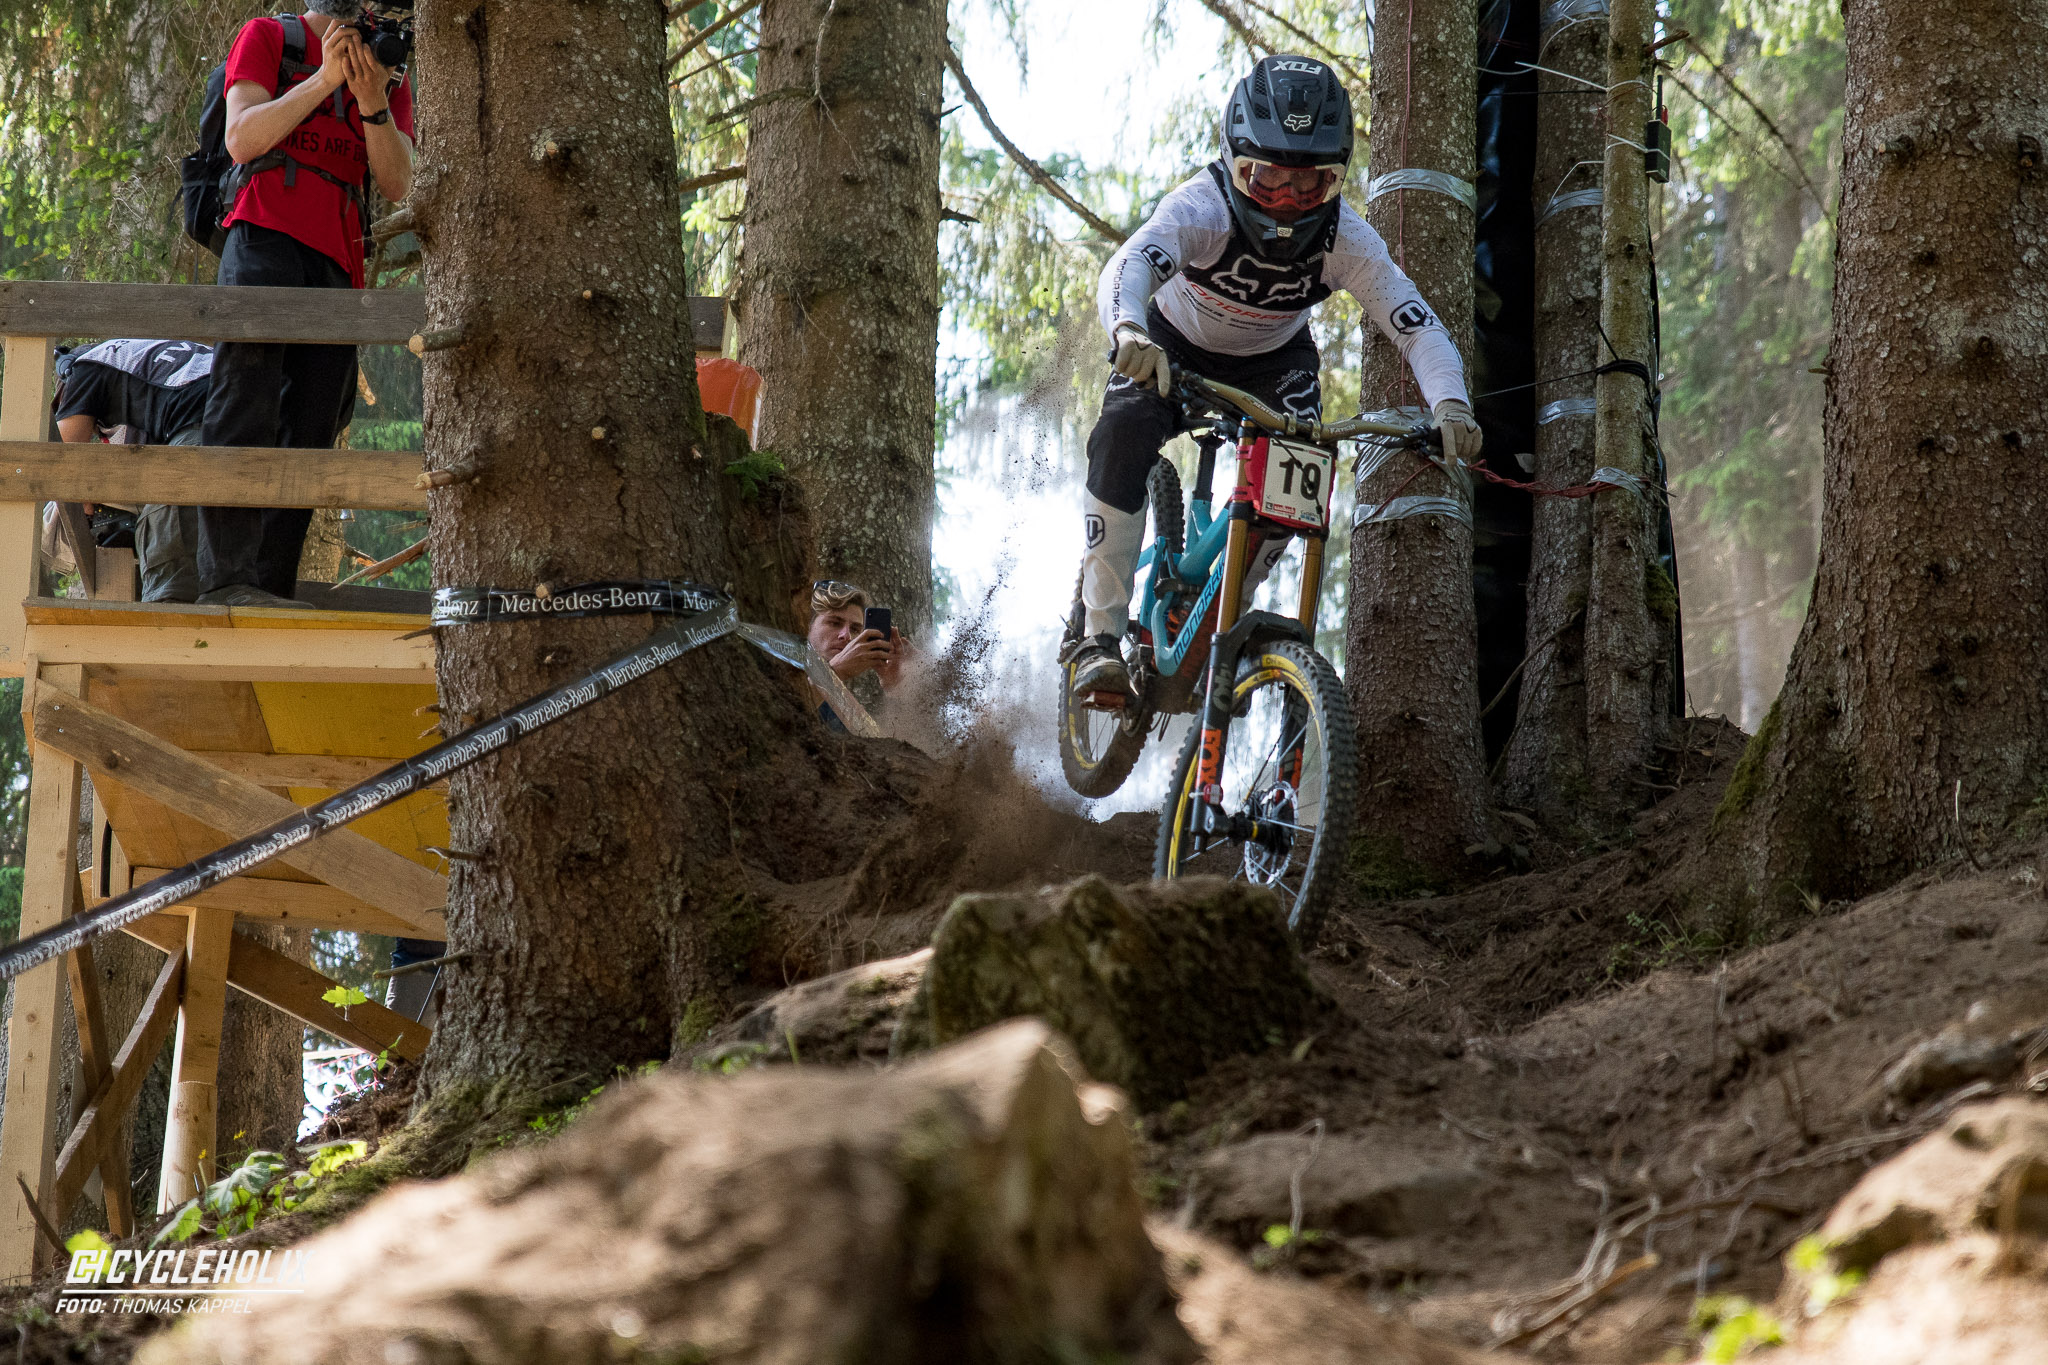 2019 Downhill Worldcup Leogang Finale Action 12